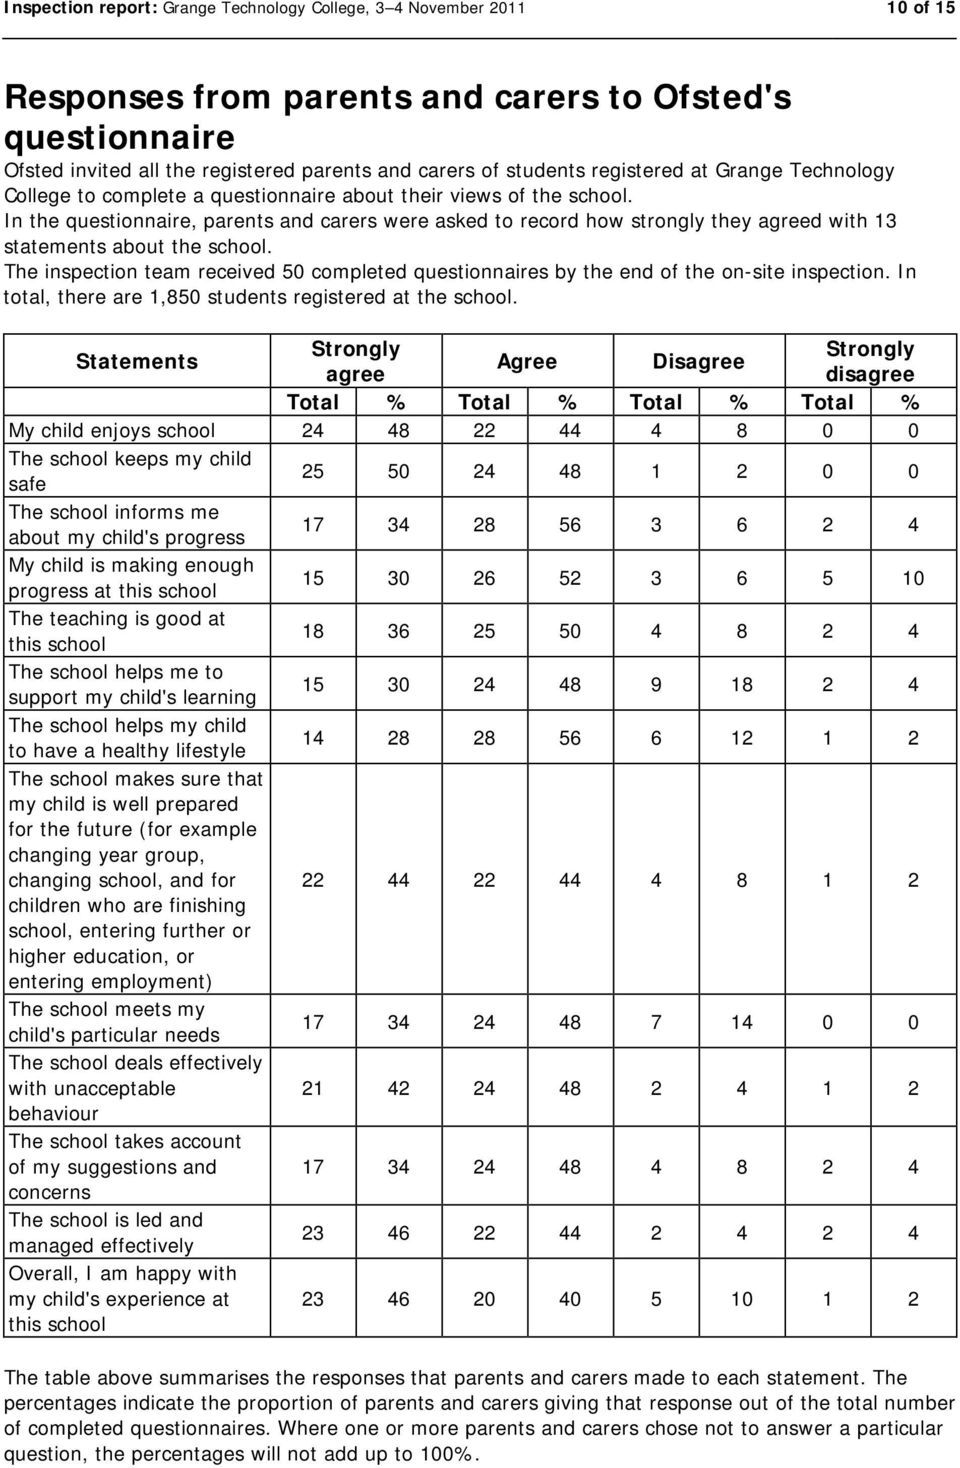 In the questionnaire, parents and carers were asked to record how strongly they agreed with 13 statements about the school.